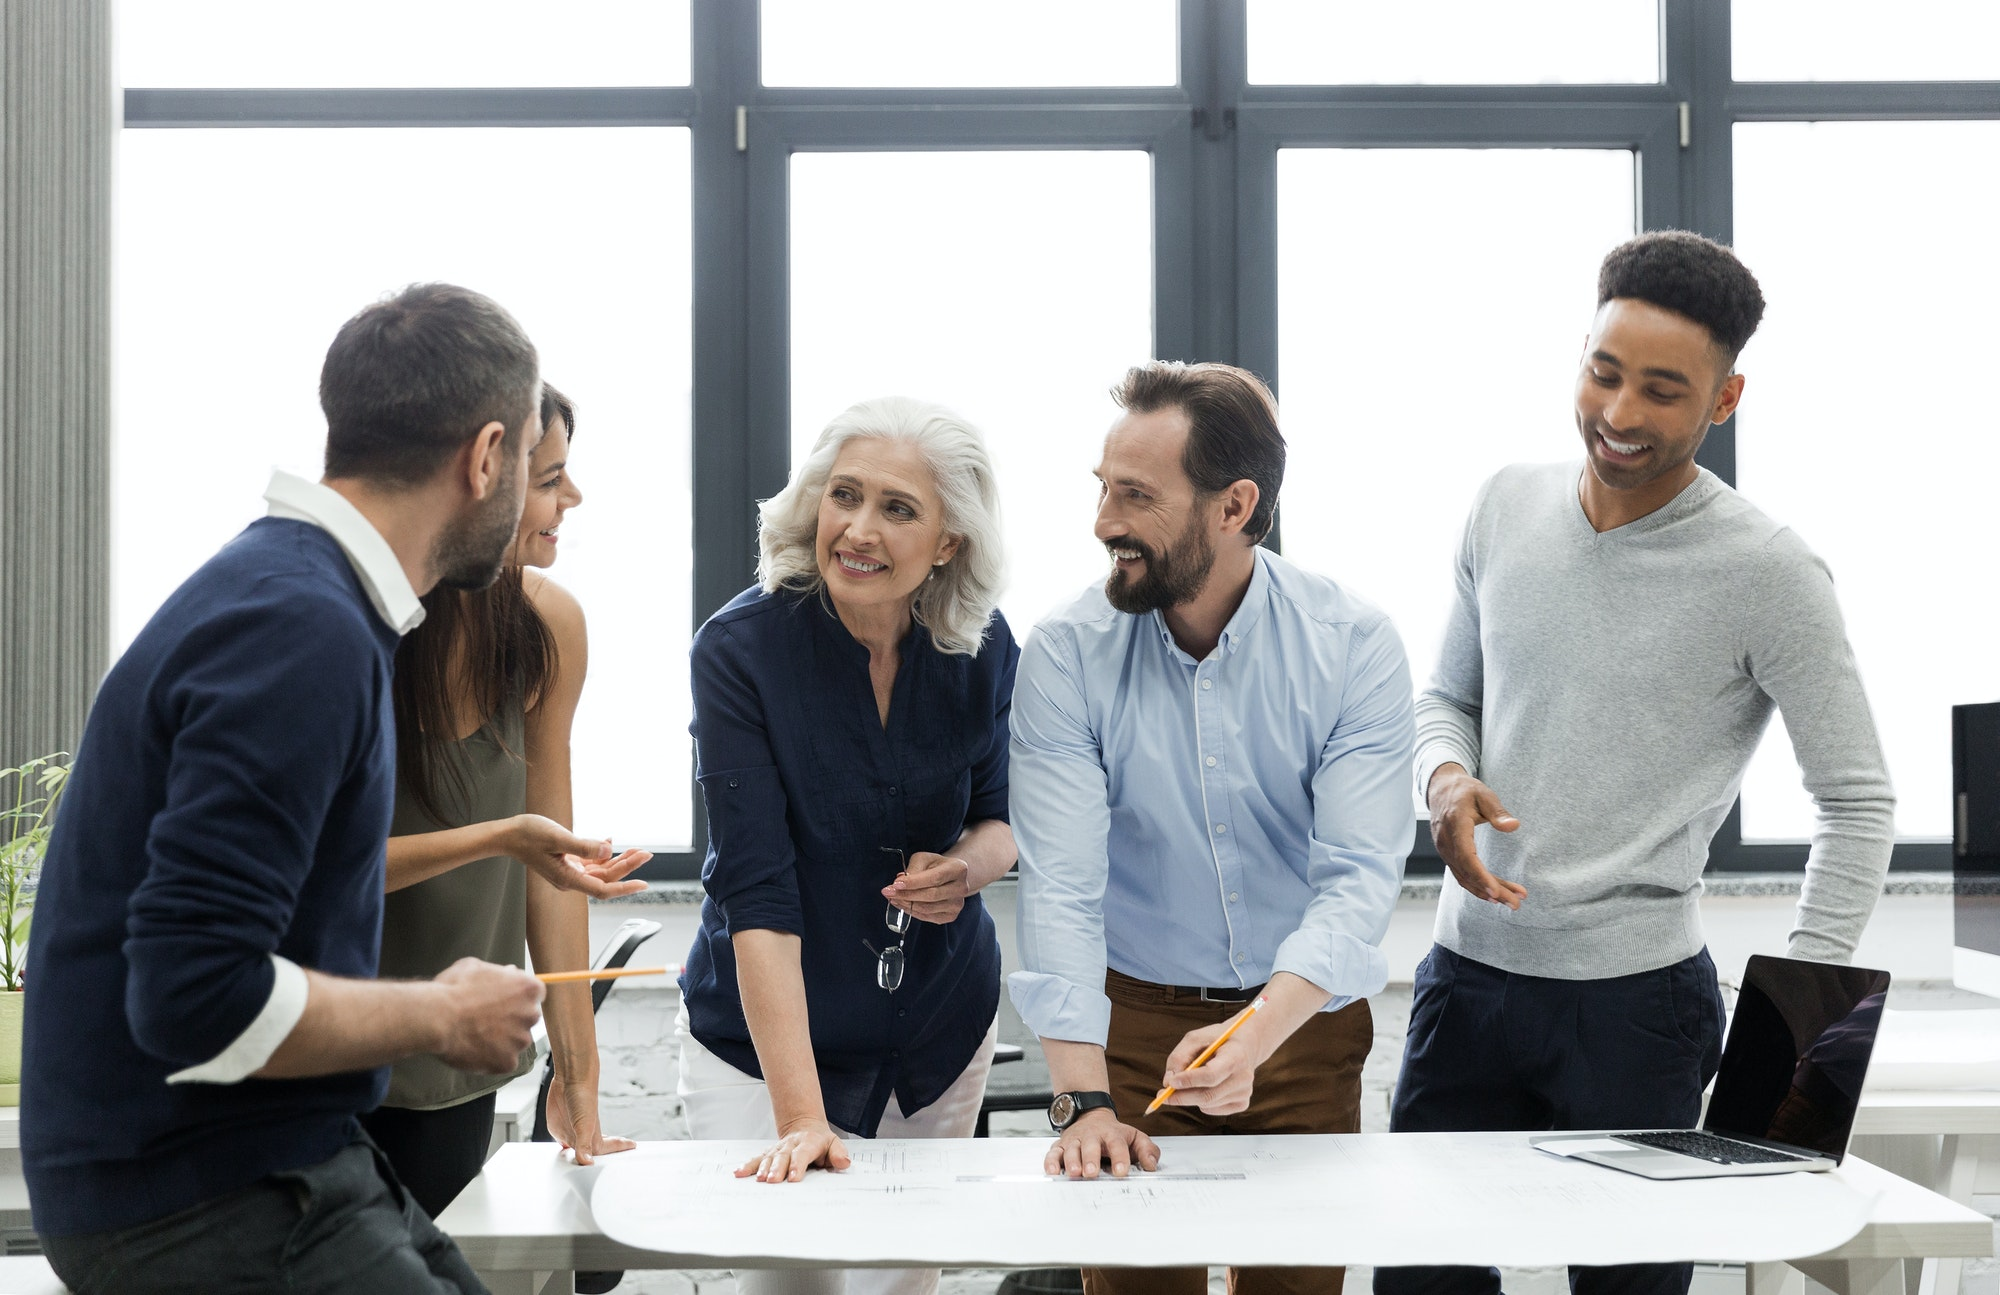 Group of smiling business people busy discussing